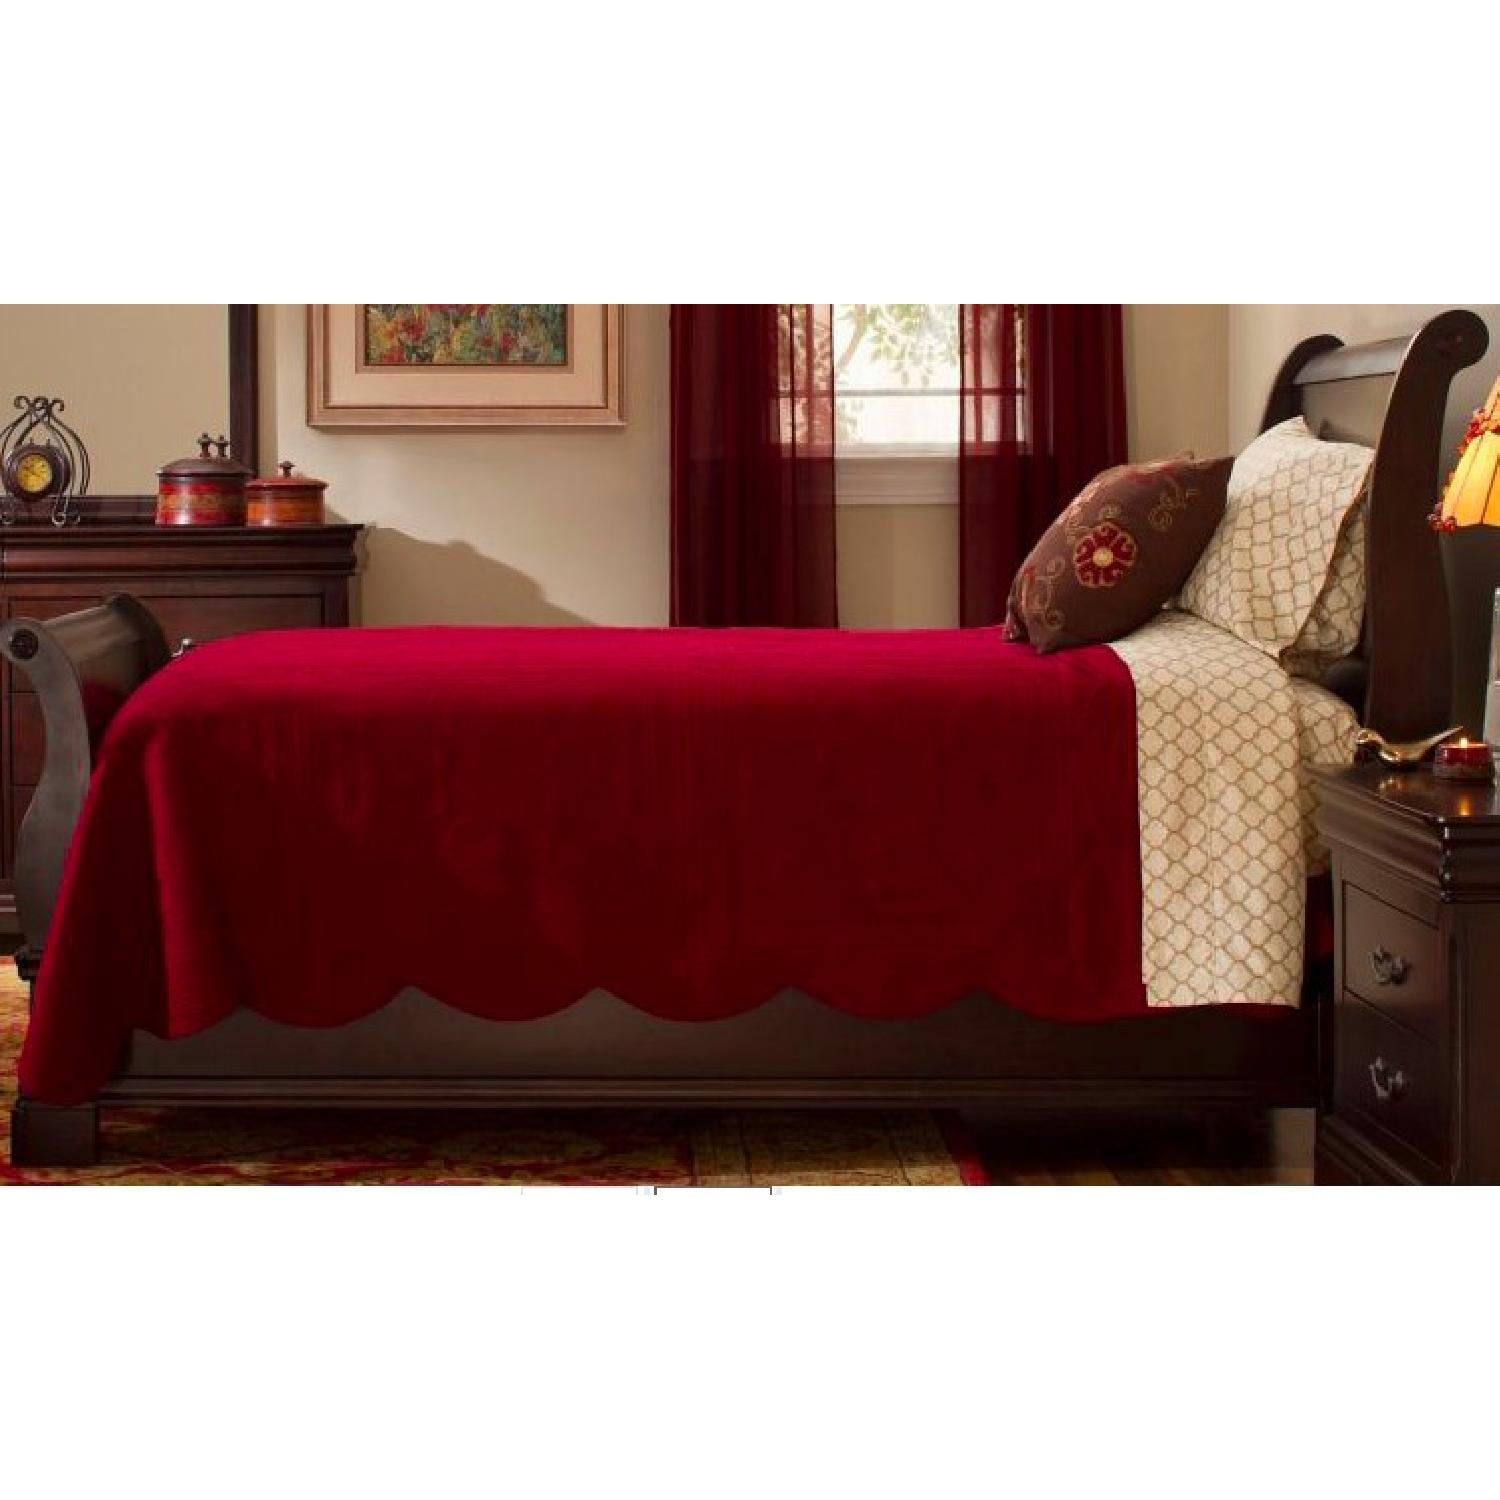 Macy's Louis Philippe King Sleigh Bed-0